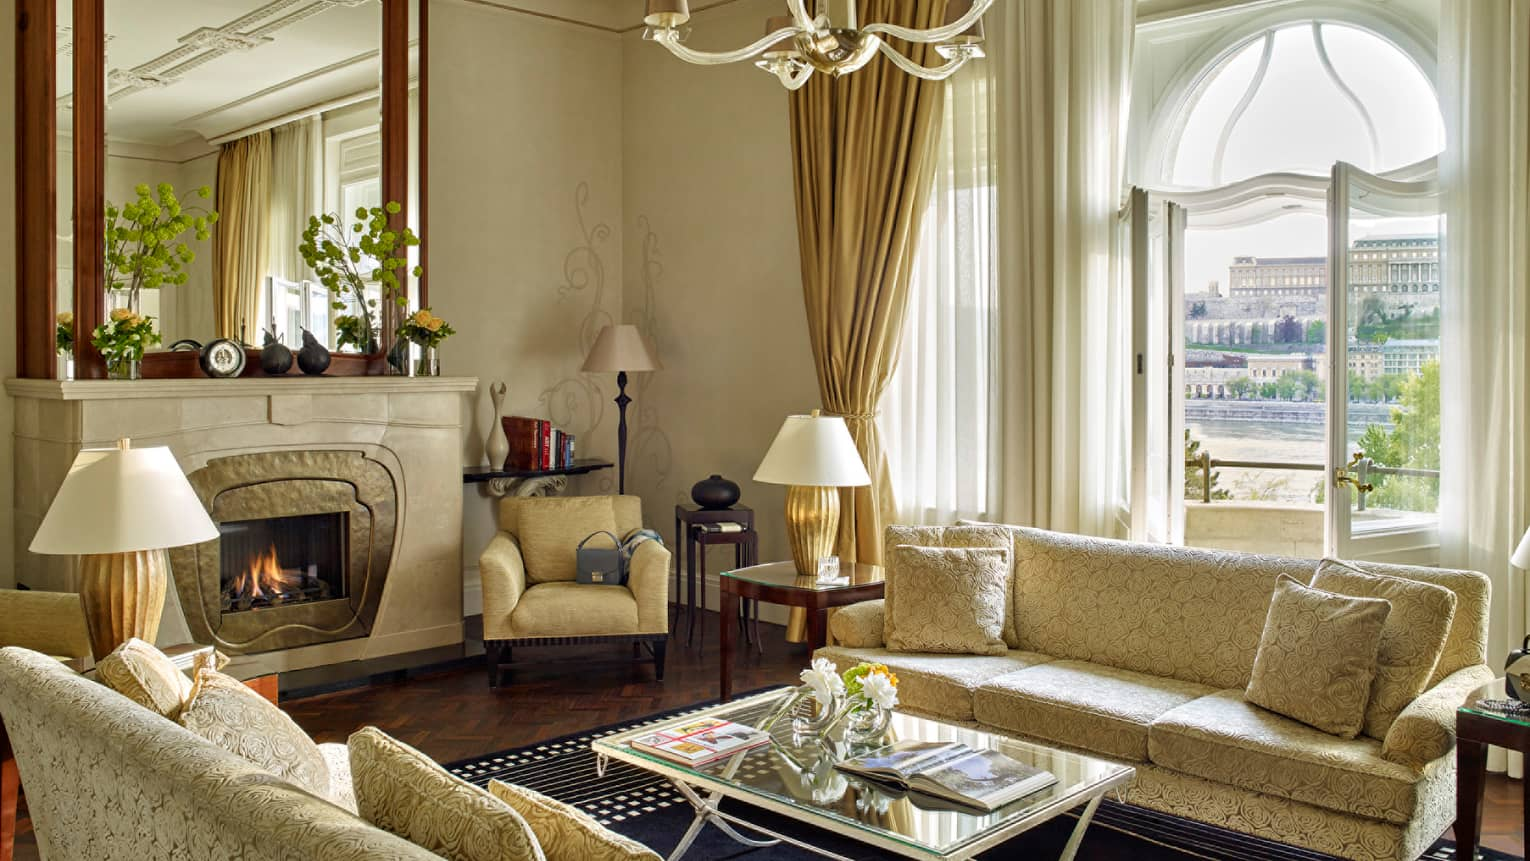 /content/fshr/pages/en/properties/budapest/accommodations/suites/sir_gresham_presidential_suite